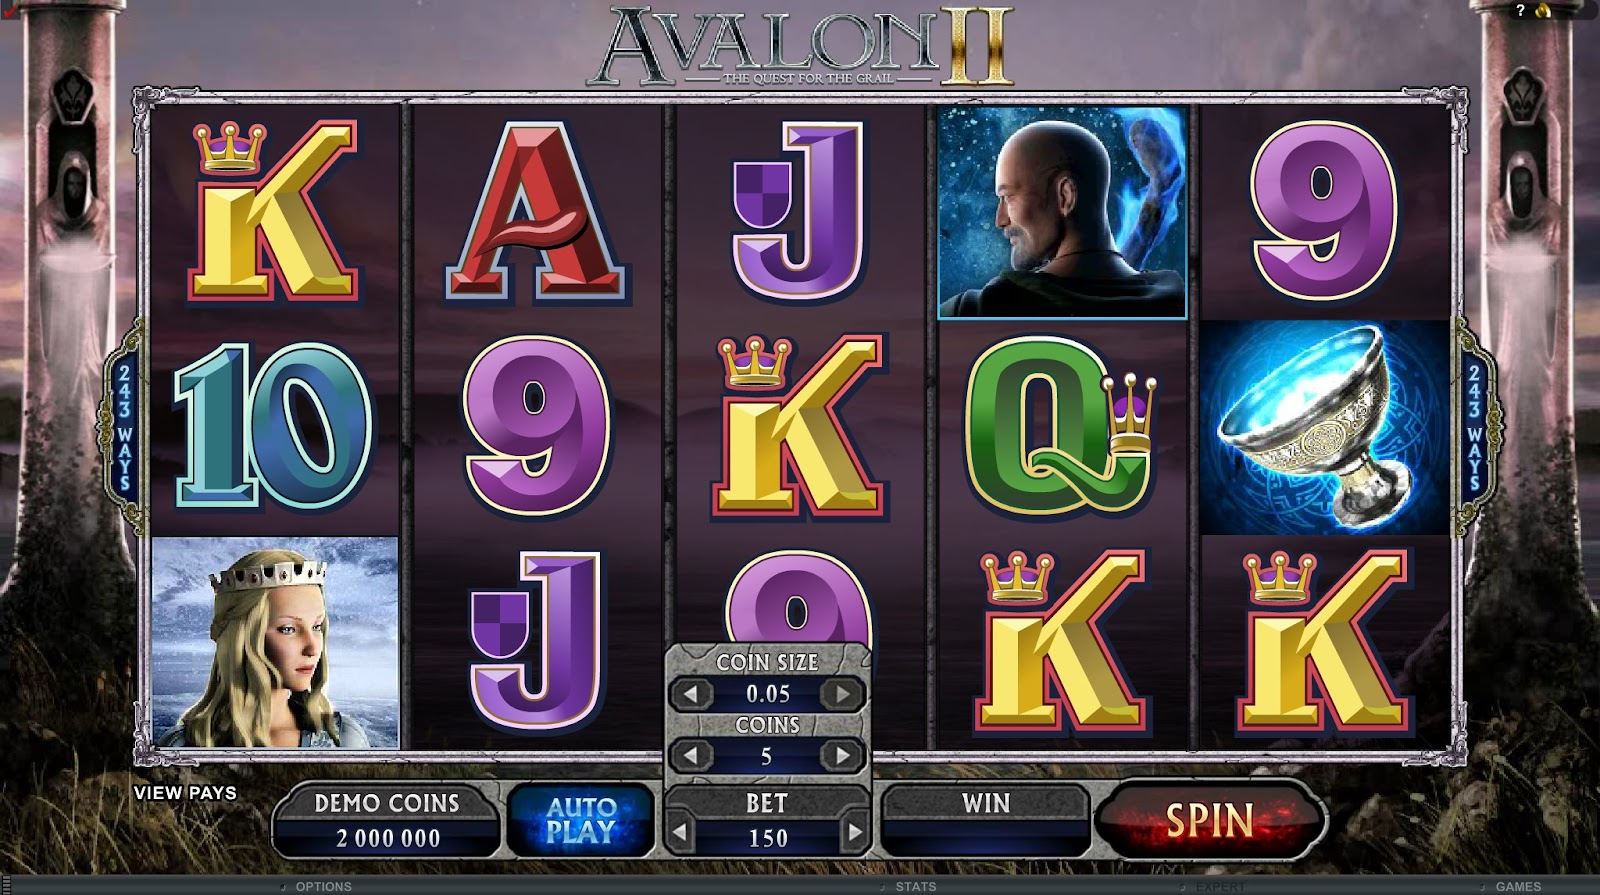 Avalon II Slots Game Review